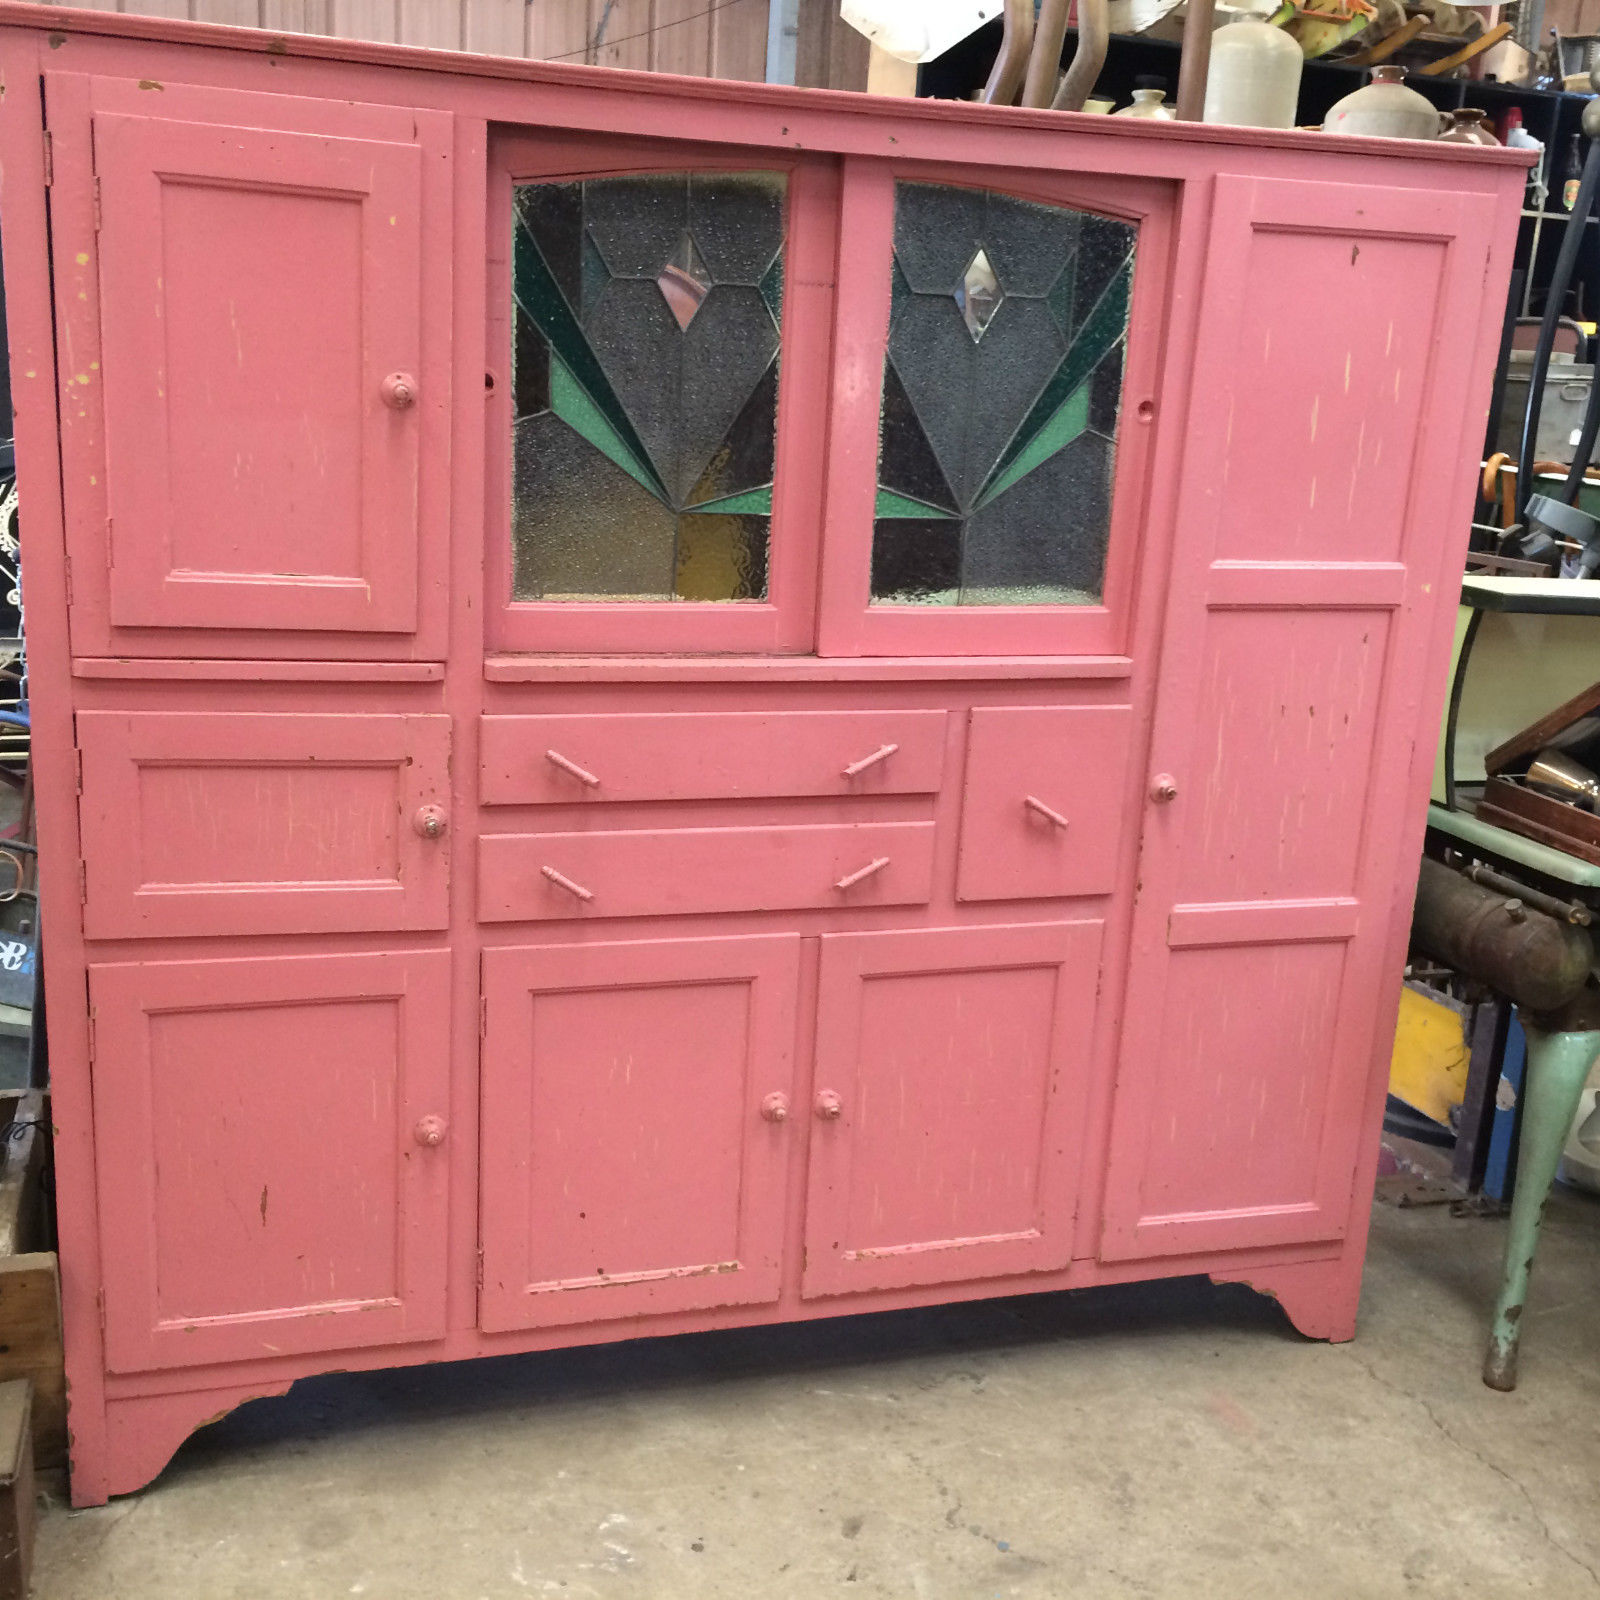 Vintage Shabby Distressed Rustic Kitchen Dresser Cupboard Cabinet | Halsey Road Recyclers